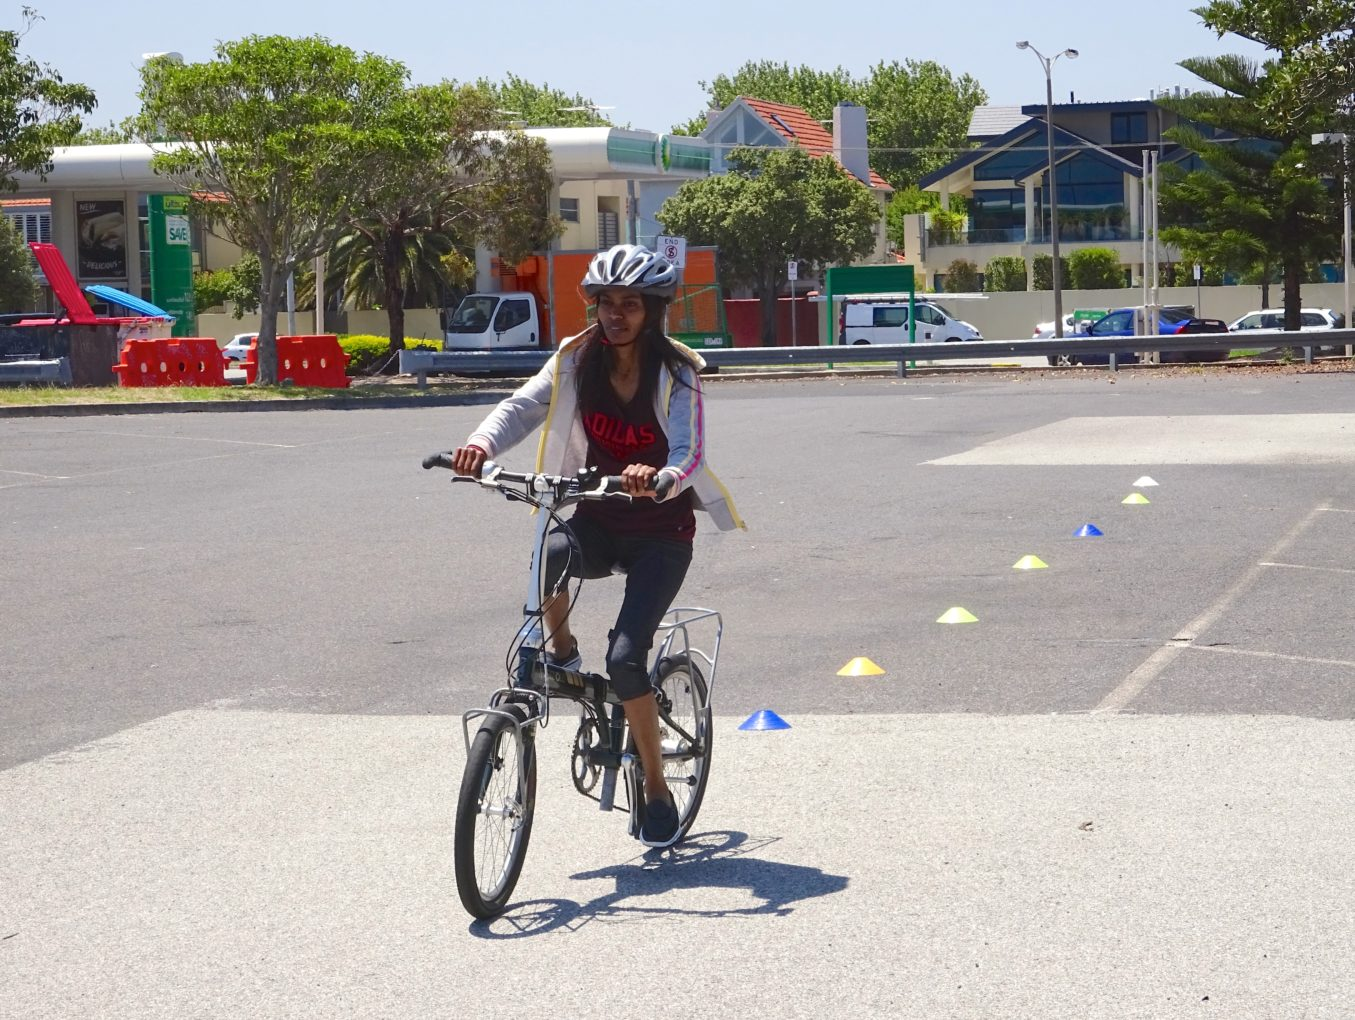 Vouchers avail: Learn to ride / JOIN OUR RIDES